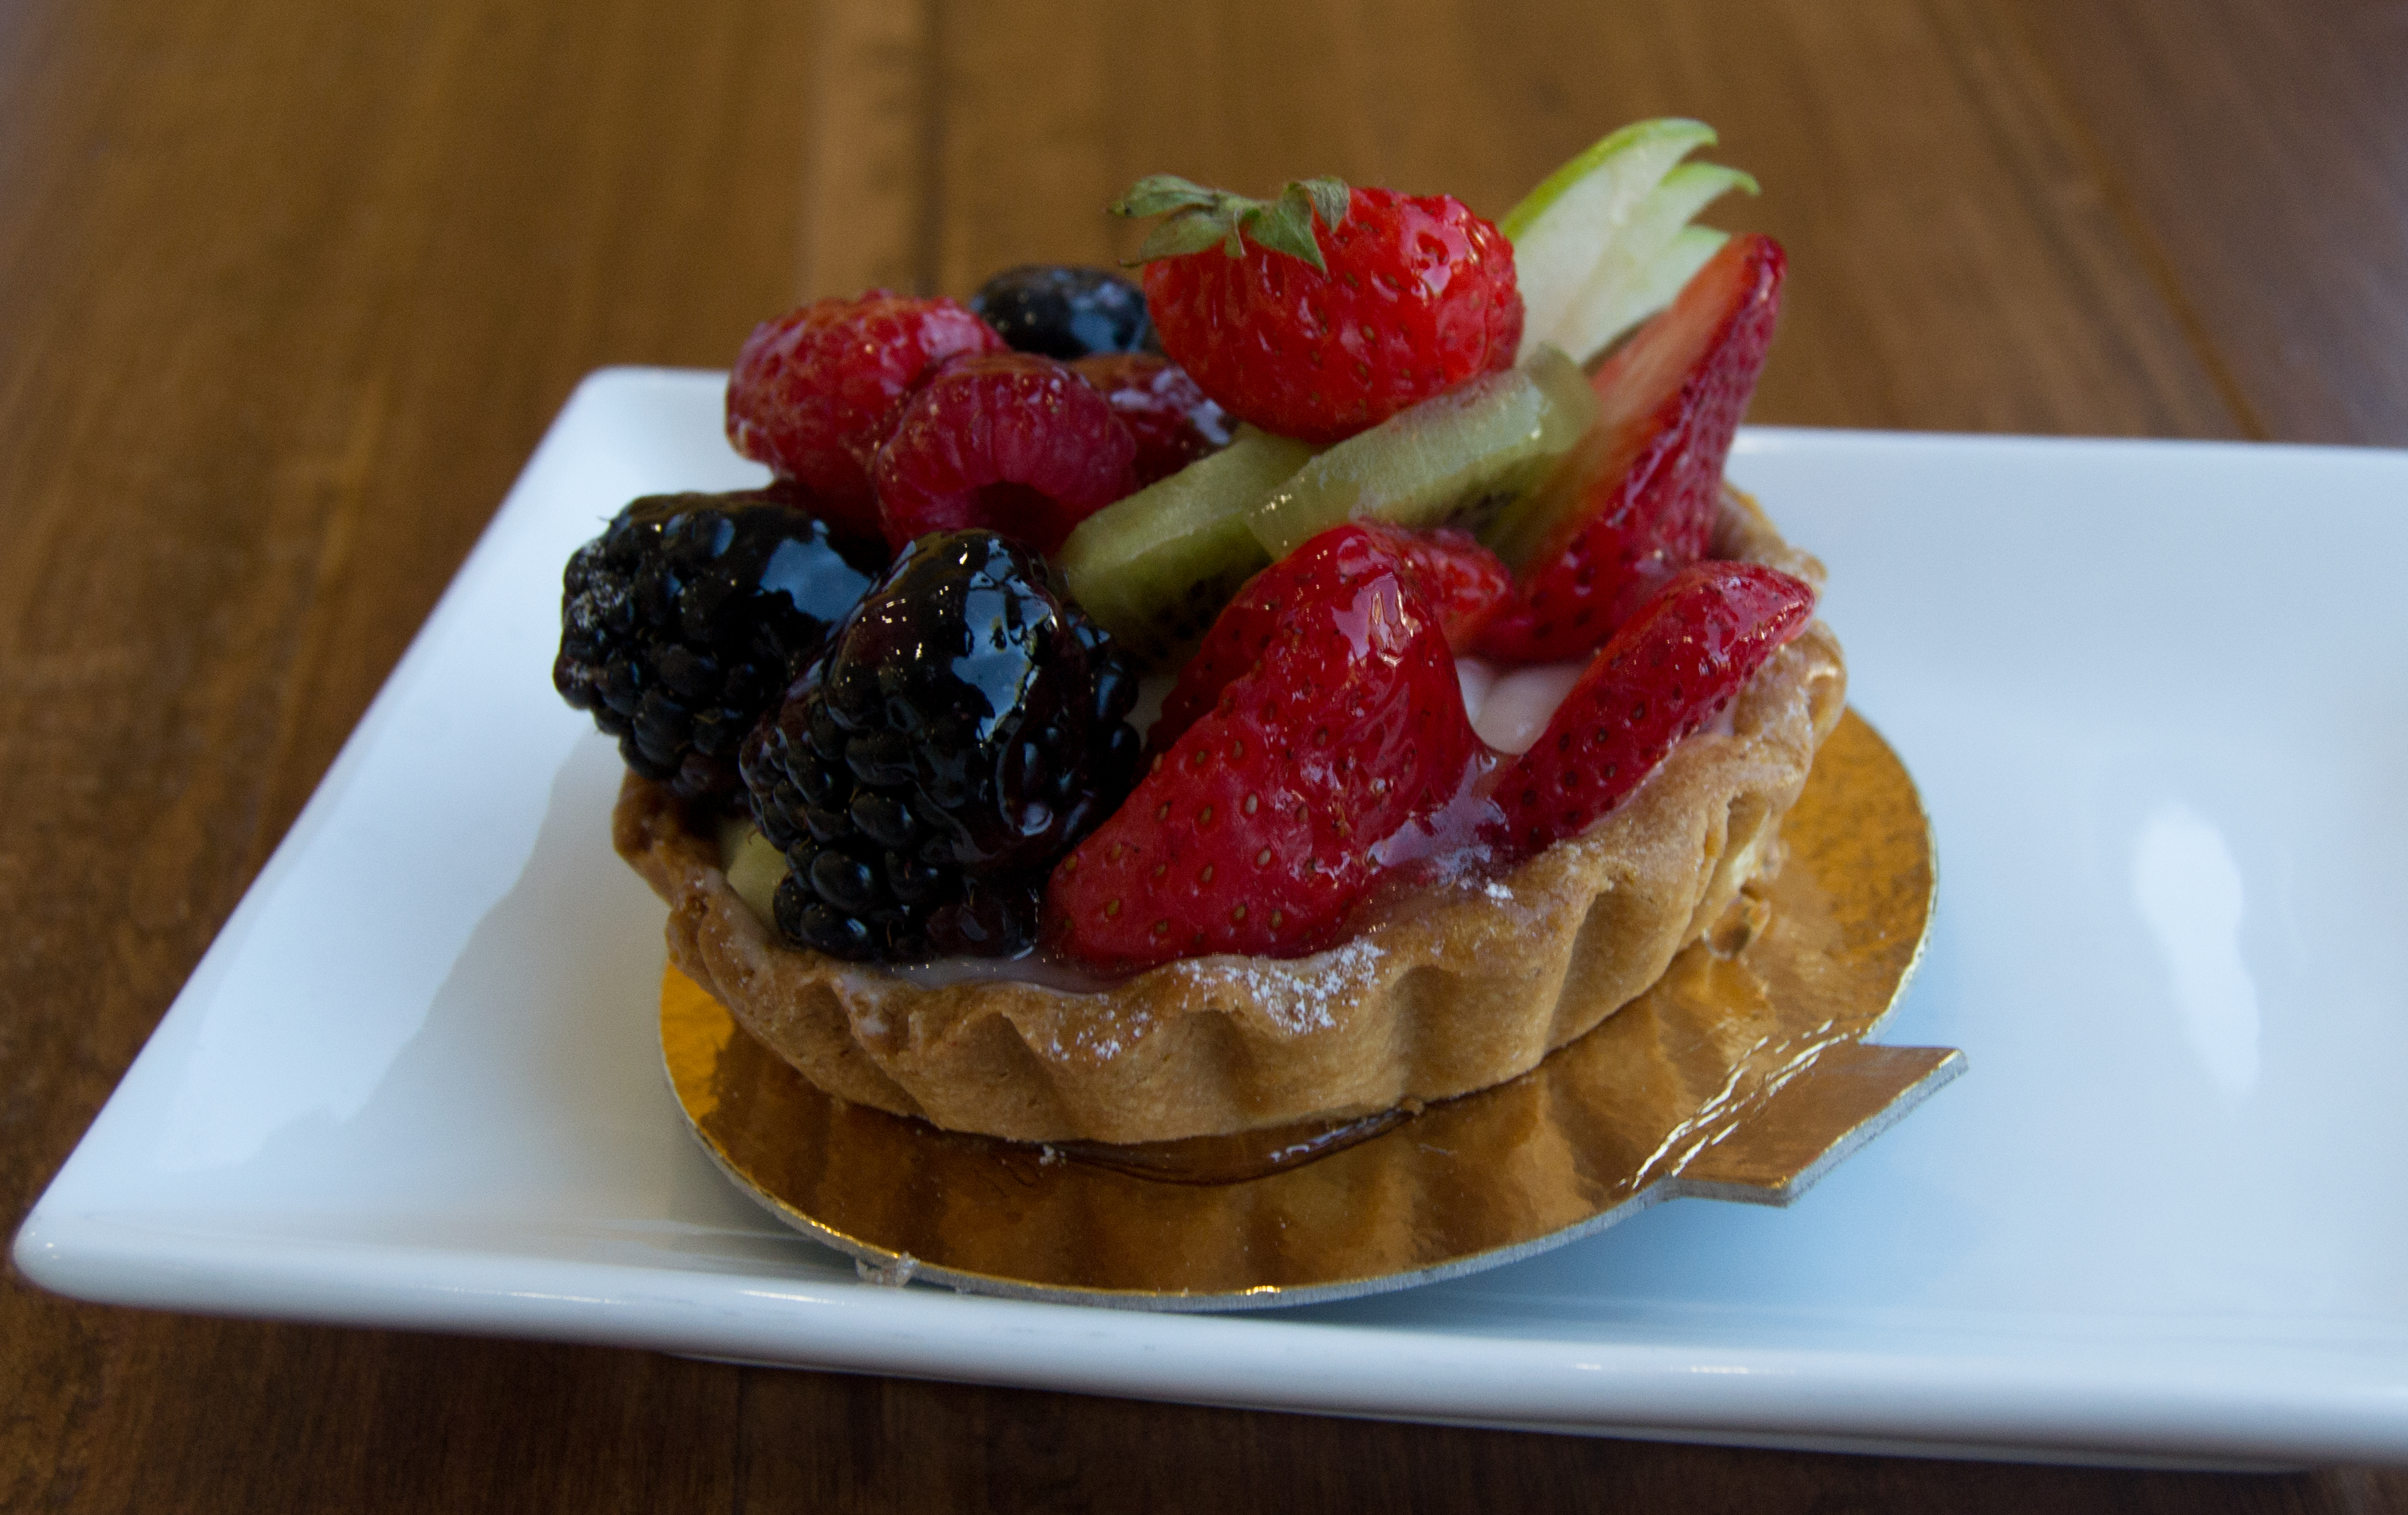 Strawberries, kiwi and black berries are some of the sweet ingredients for the fruit tart, at Pascal Patisserie and Cafe in Woodland Hills, Calif. on Sept. 29, 2016. Photo by Marc Dionne.